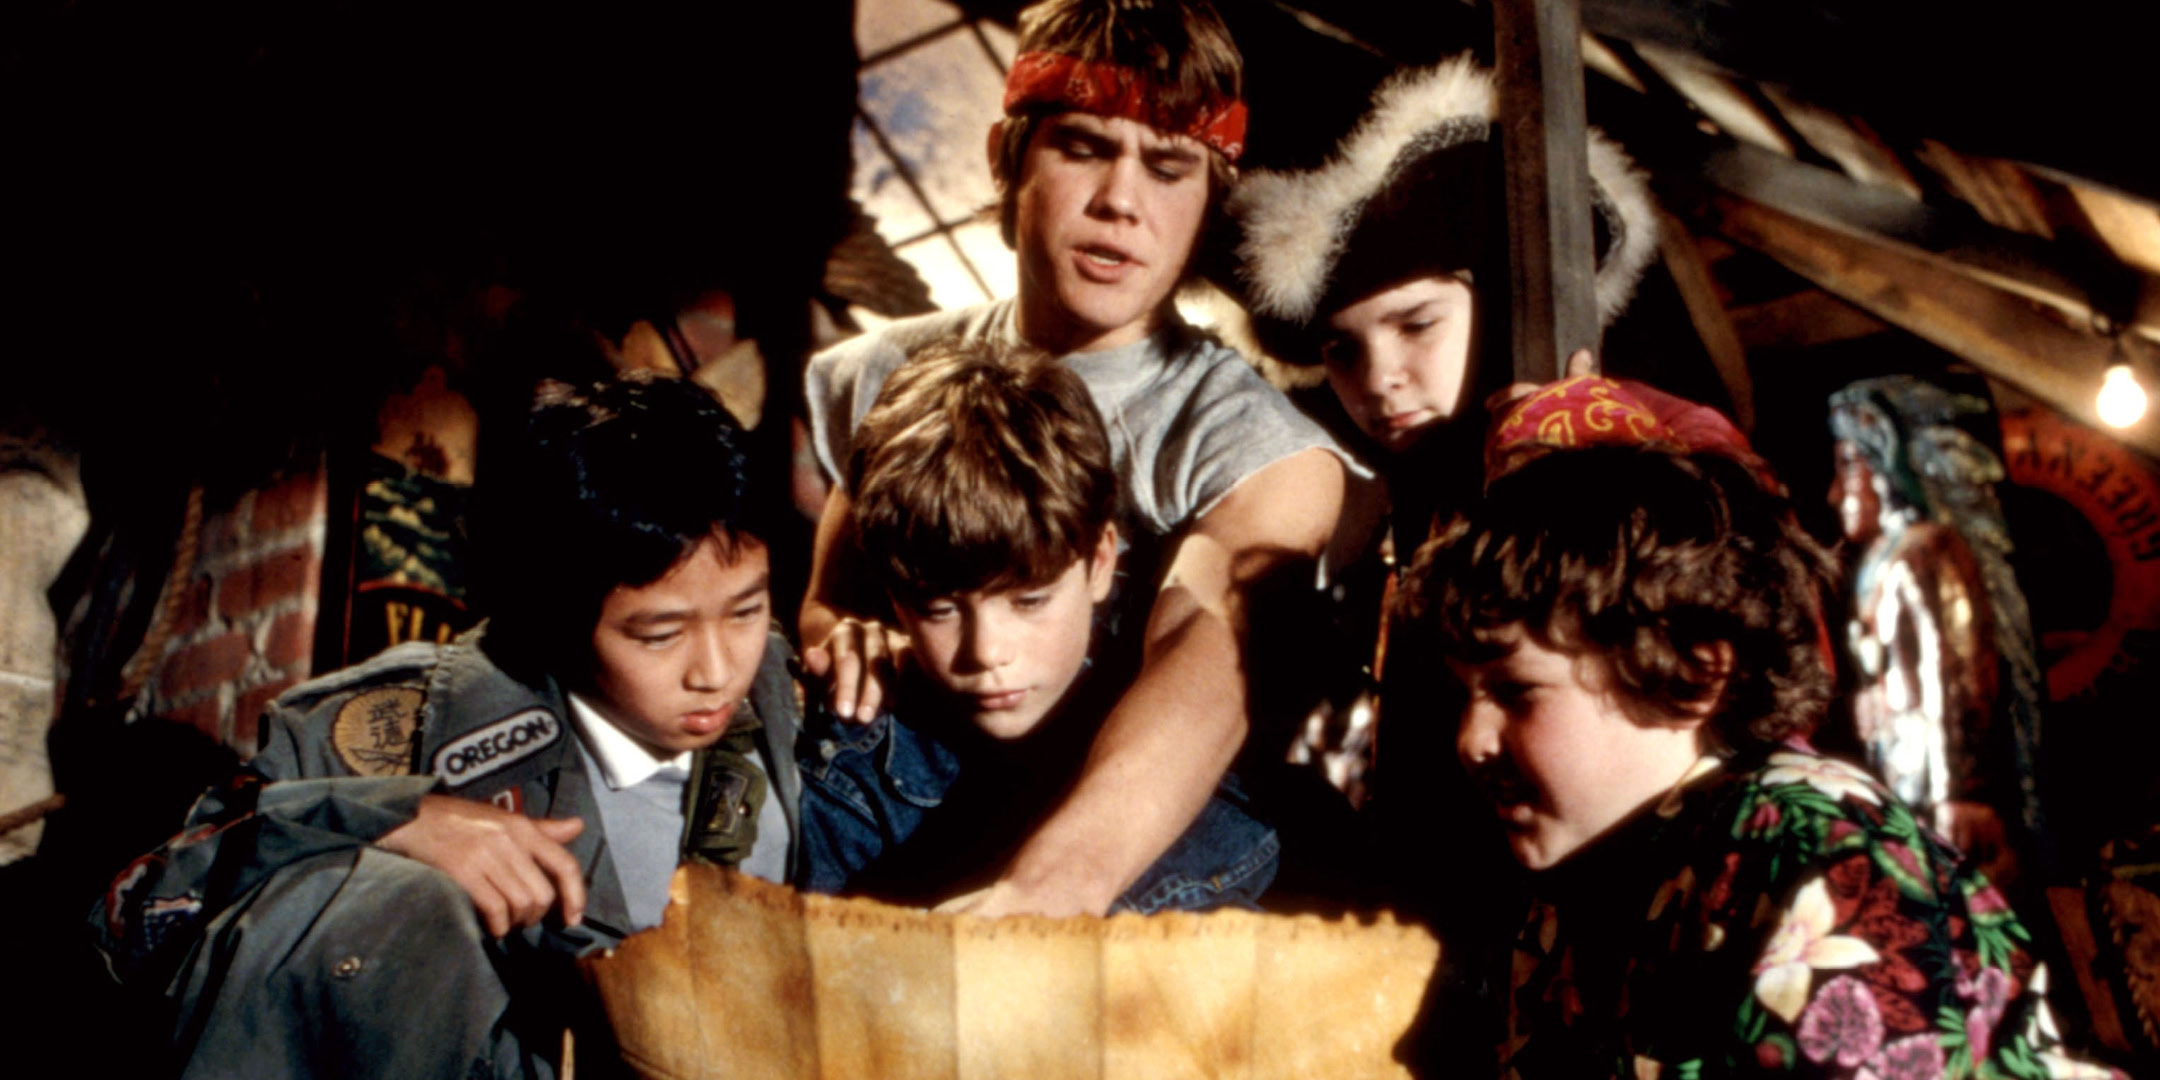 The Goonies— Saturday, June 29 - DONATIONS TO BENEFIT THE WALDO THEATER RESTORATION